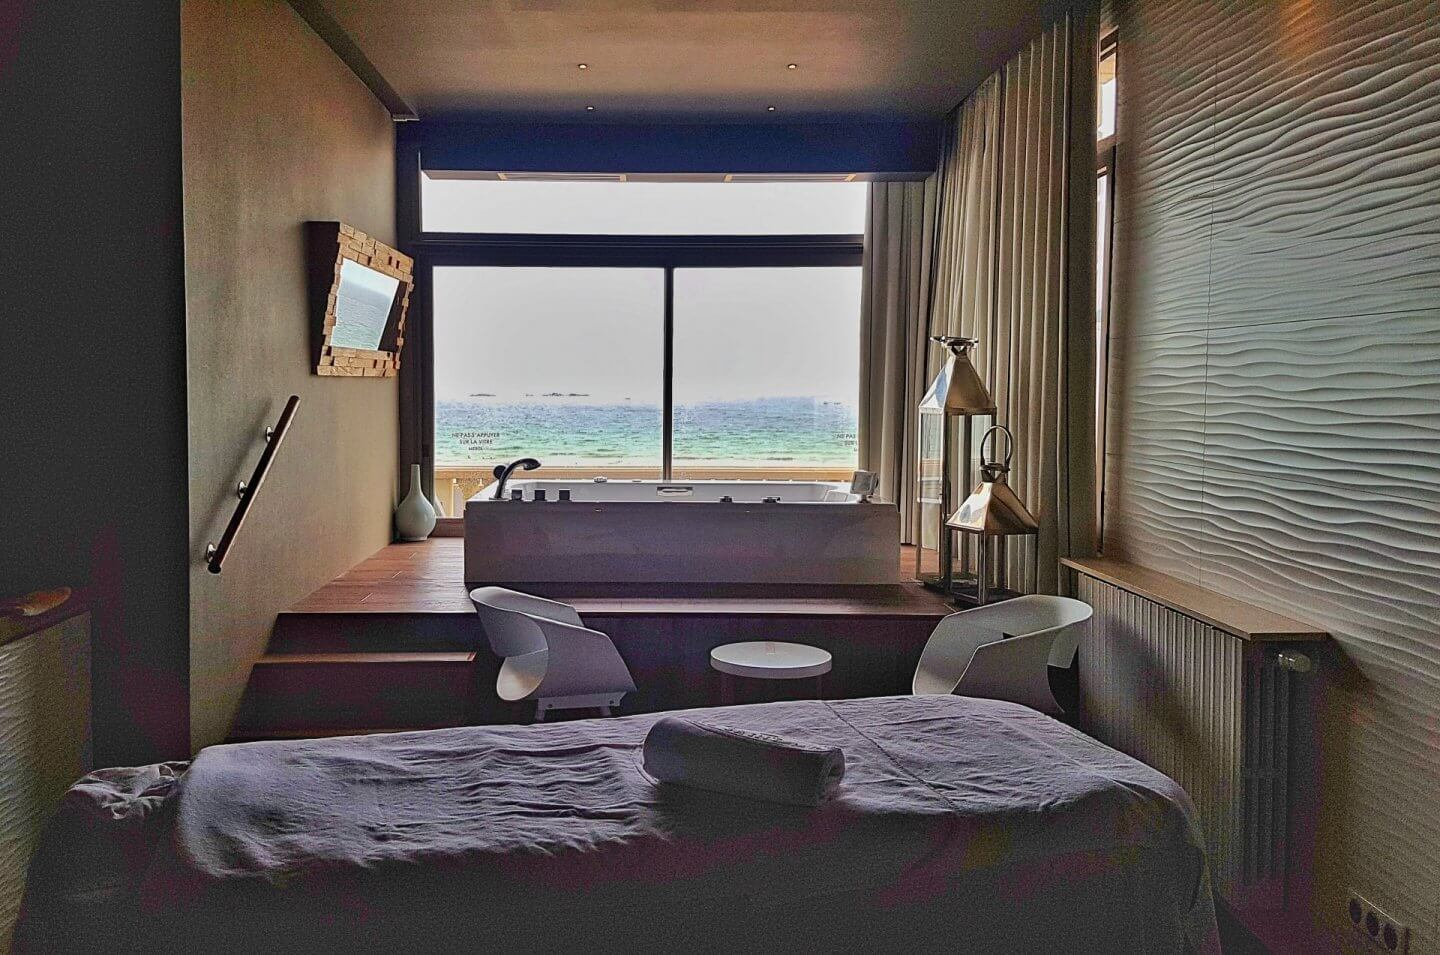 benefits of a spa day spa benefits Saint Malo France Brittany spa treatments